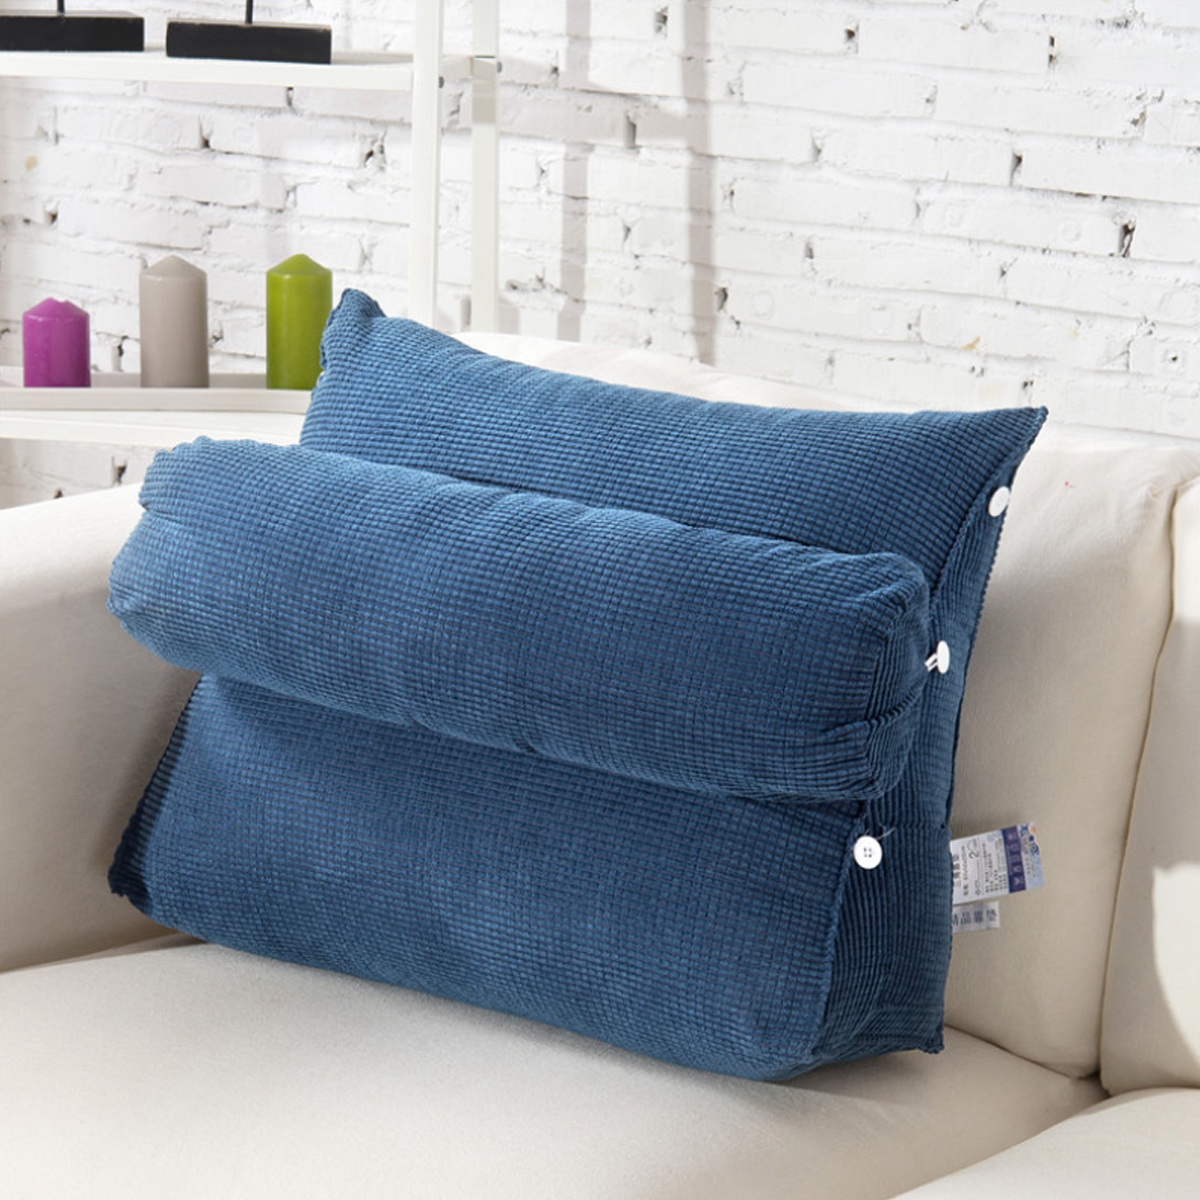 wedge backrest pillow back lumbar support pillow bedrest pillows with 3 heights adjustable neck roll for reading or relaxing in bed floor or sofa